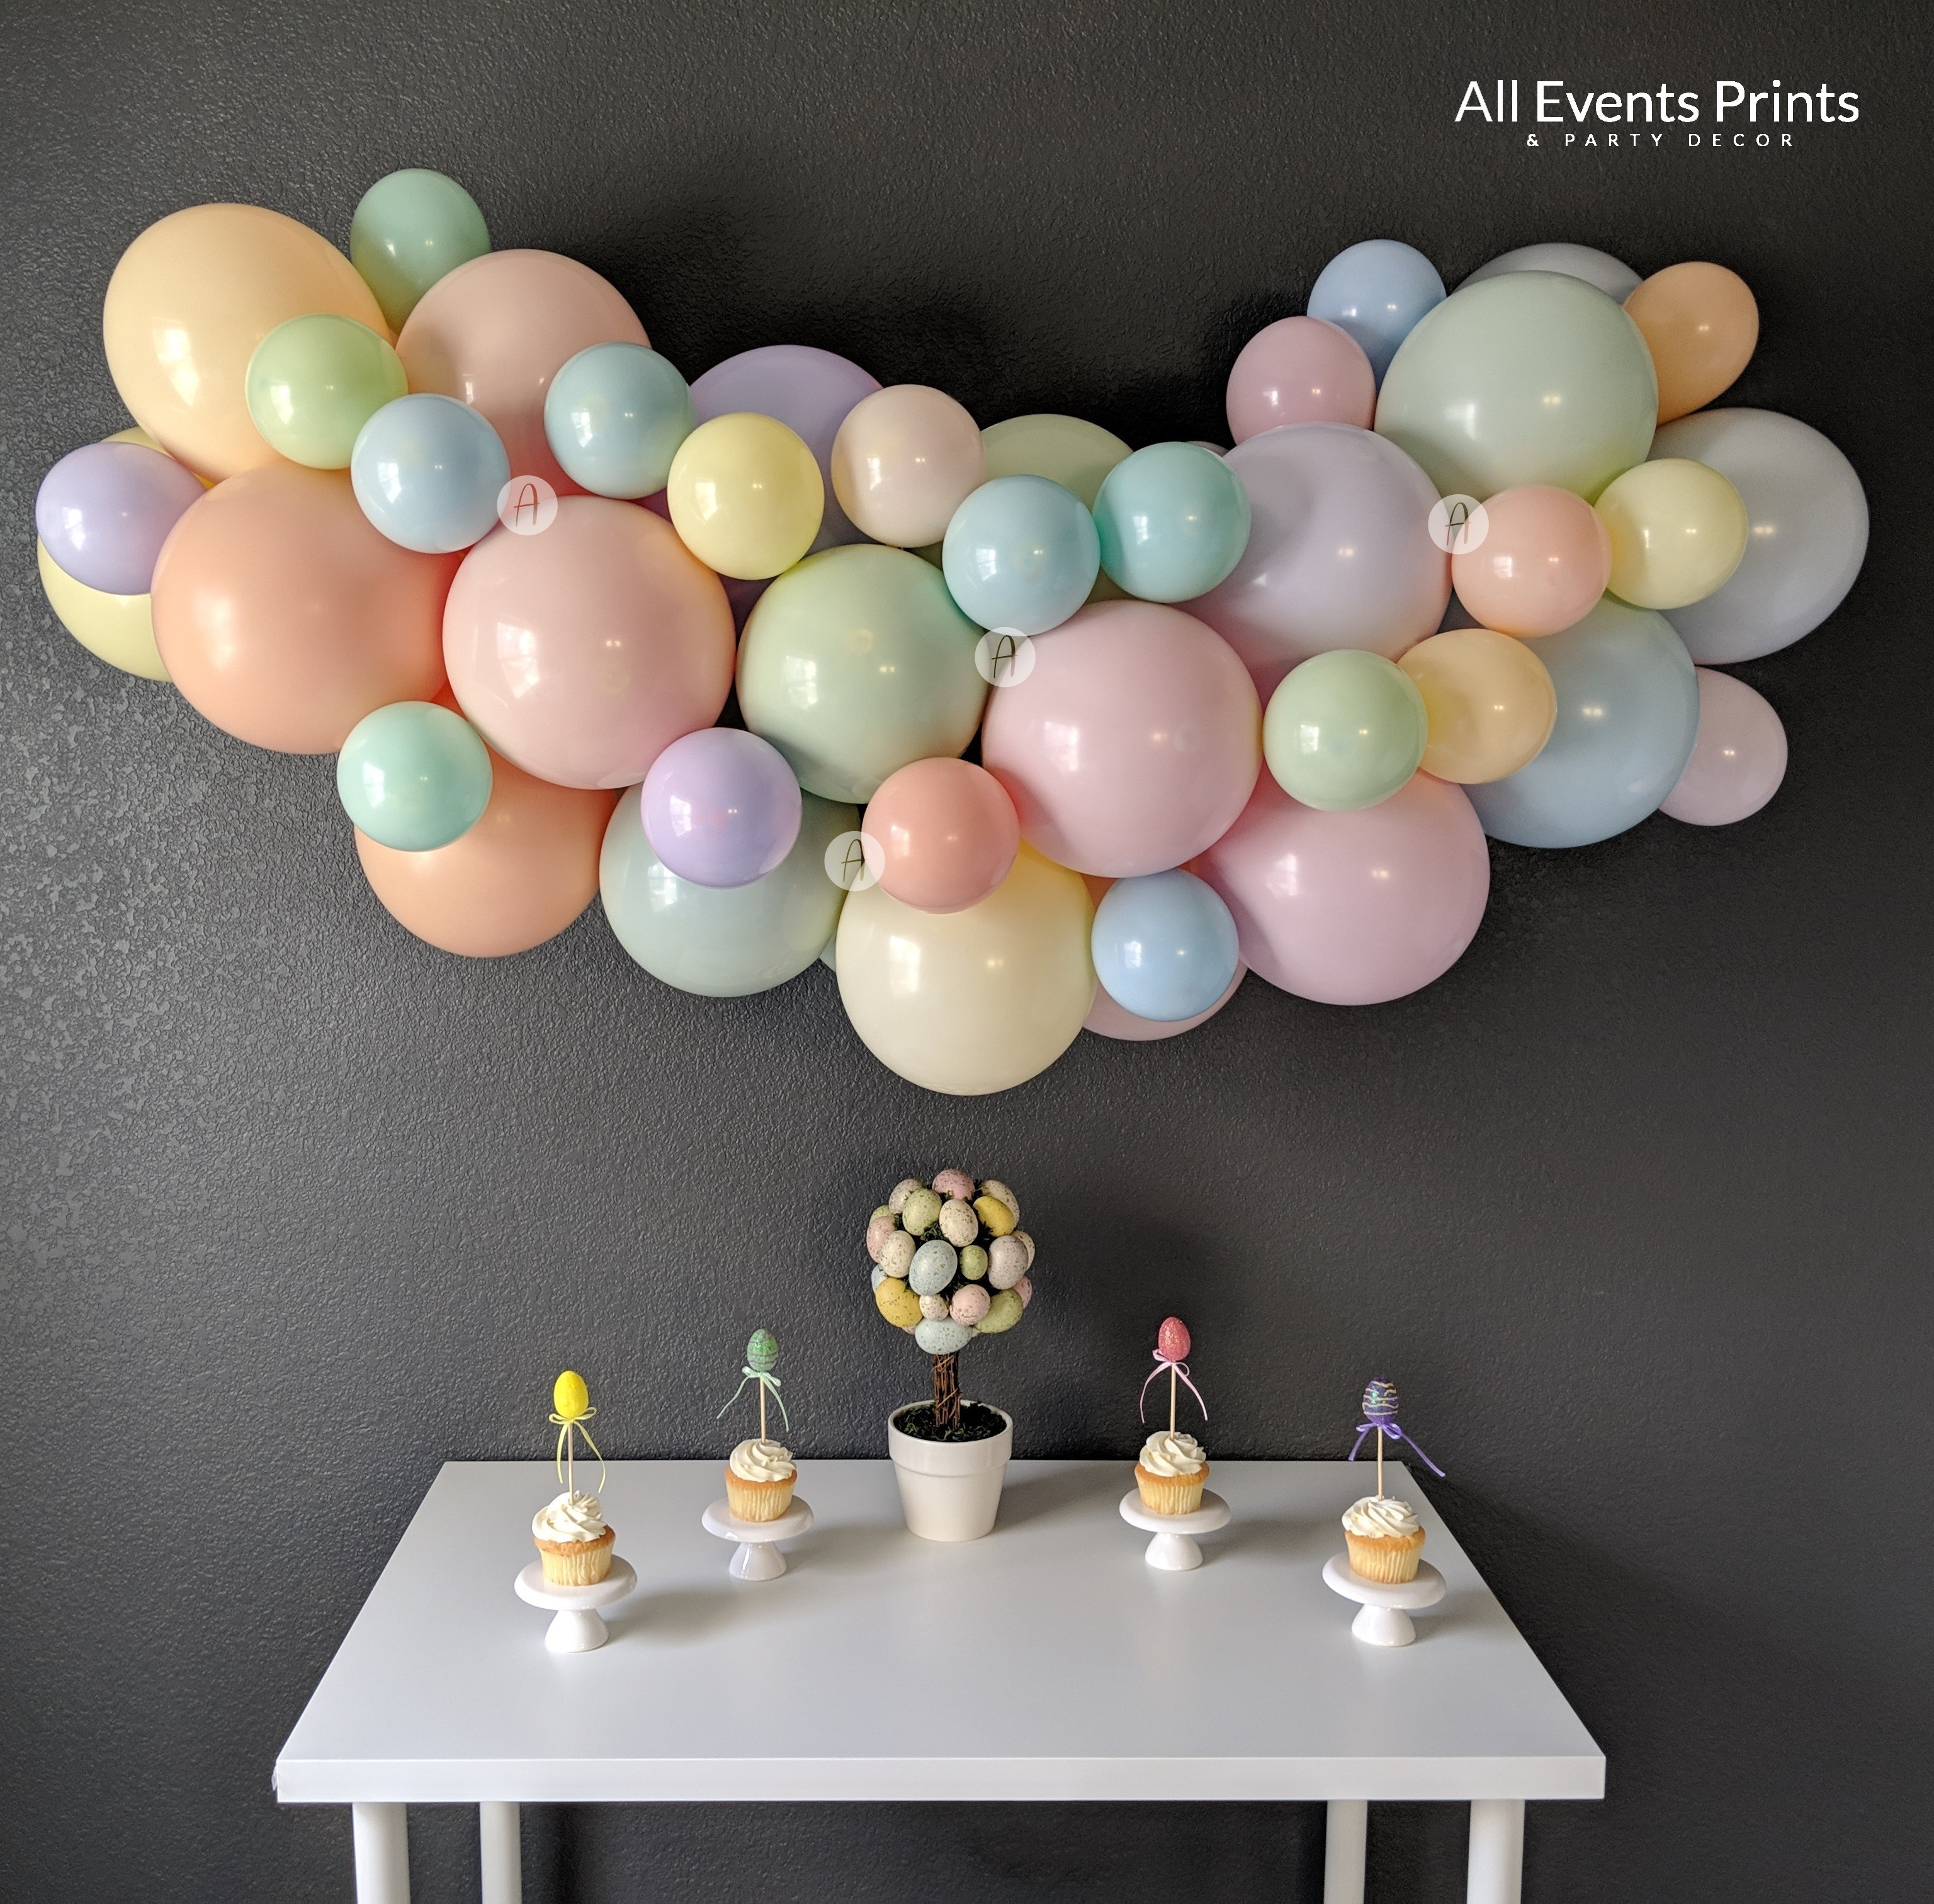 Custom Artisan Pastel Balloon Garland Diy Kit 4 Ft To 25 Ft Choose Your Own Colors Includes Balloon Pump Wall Hooks Twine All Events Prints Party Decor